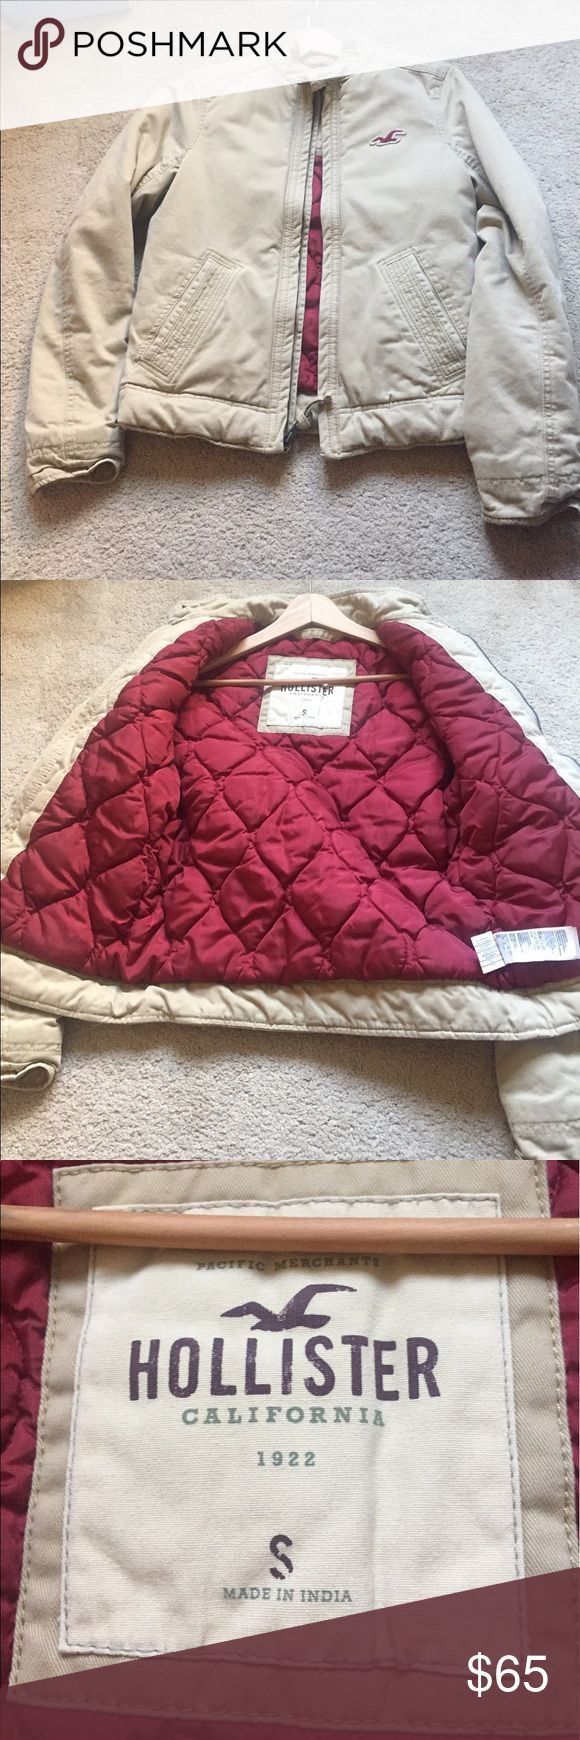 🌟Quilted Hollister jacket🌟 Cool field/military style jacket that is quilted and filled. Nice and cool jacket. Pre-owned. Bundle to save more ❤️ Hollister Jackets & Coats Military & Field